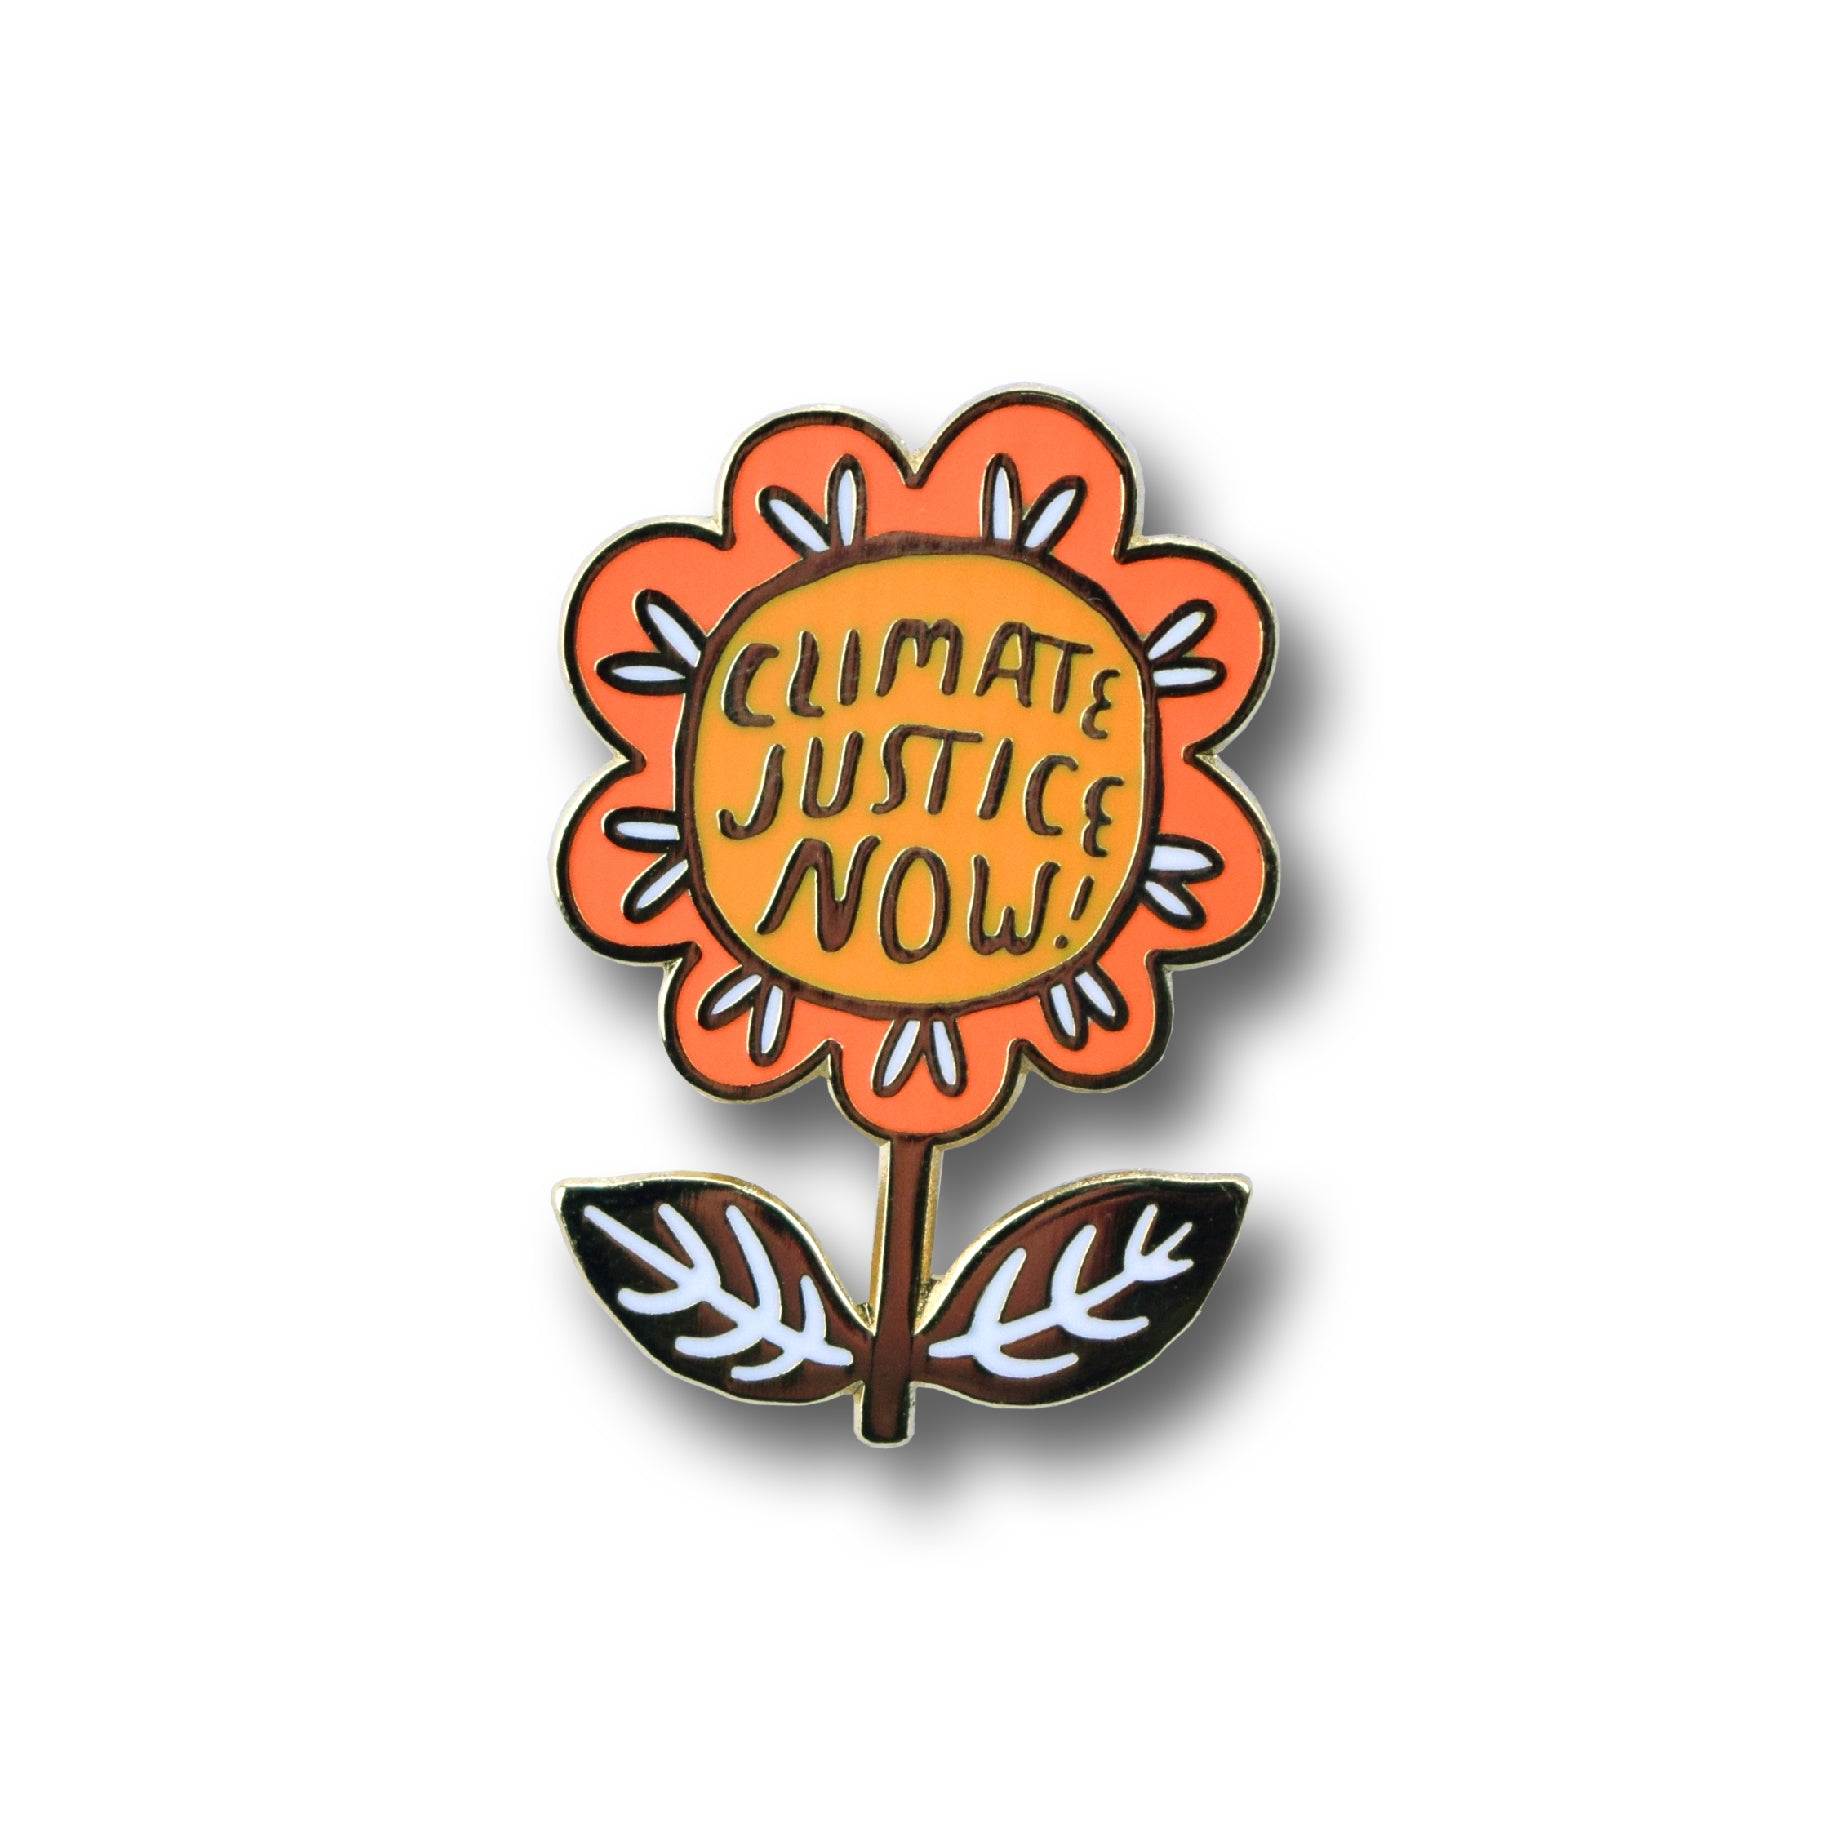 CLIMATE JUSTICE NOW enamel pin